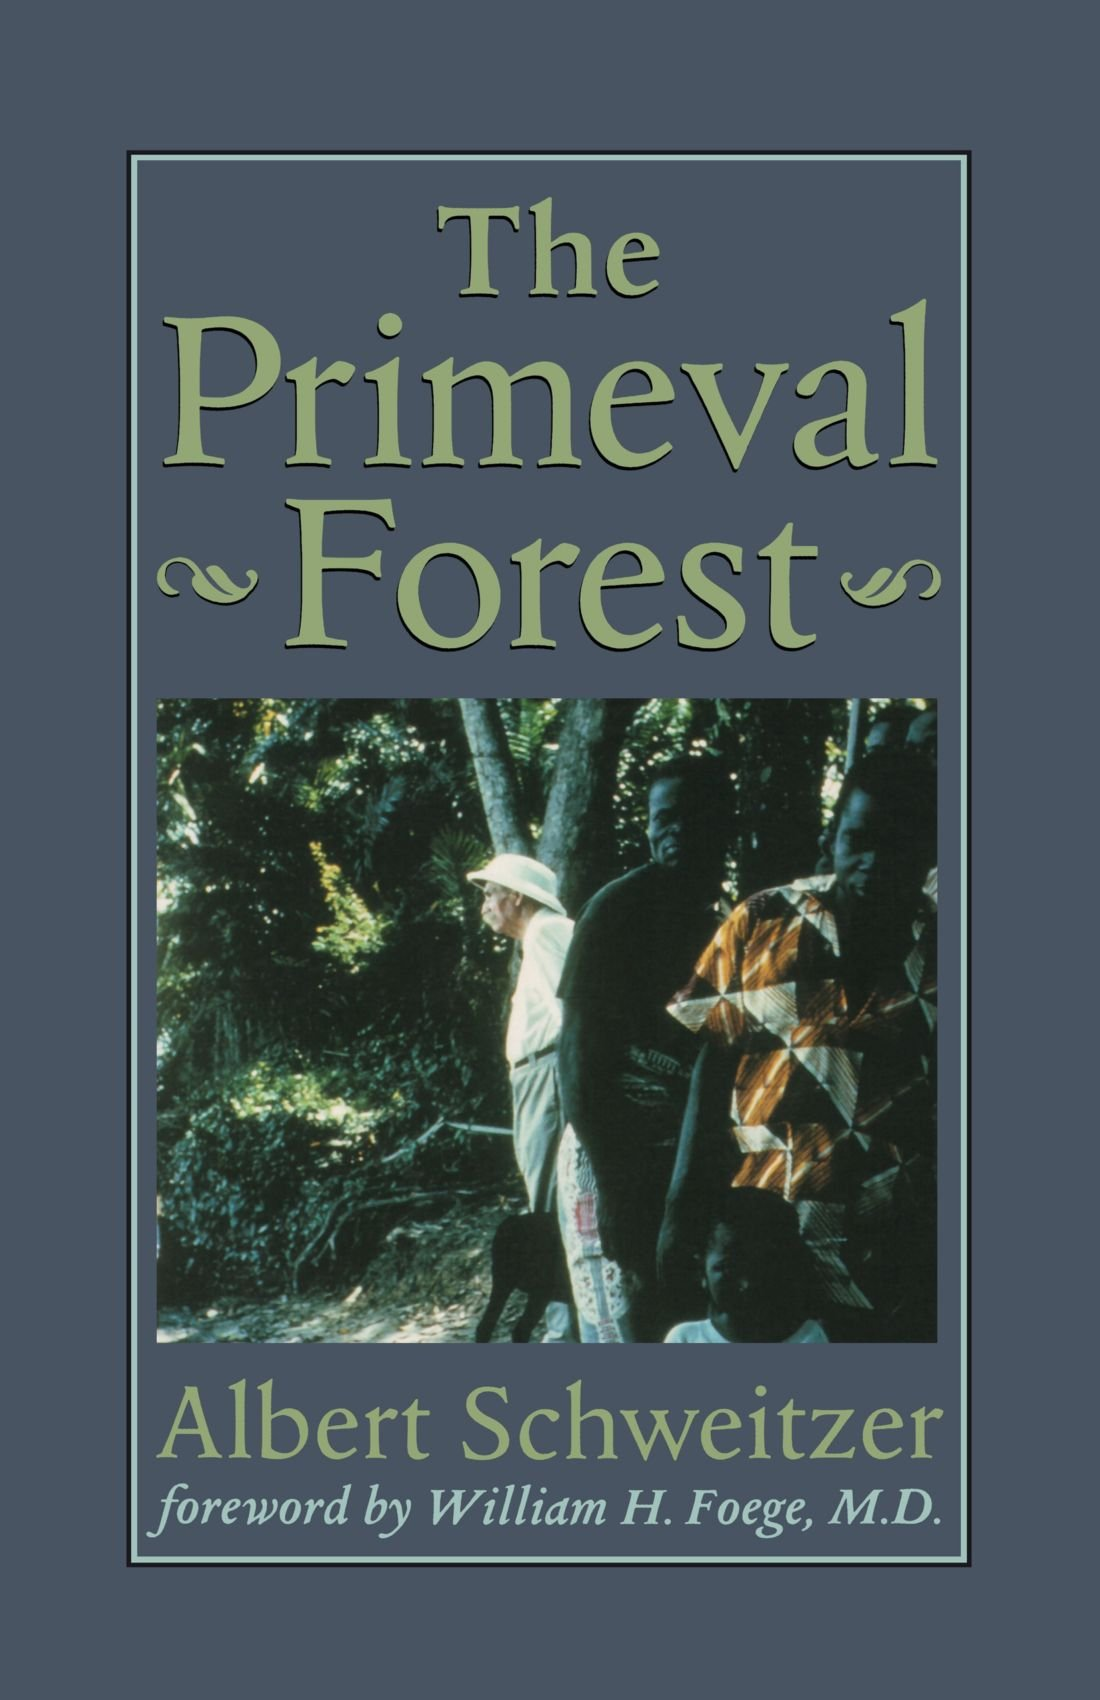 The Primeval Forest (The Albert Schweitzer Library)